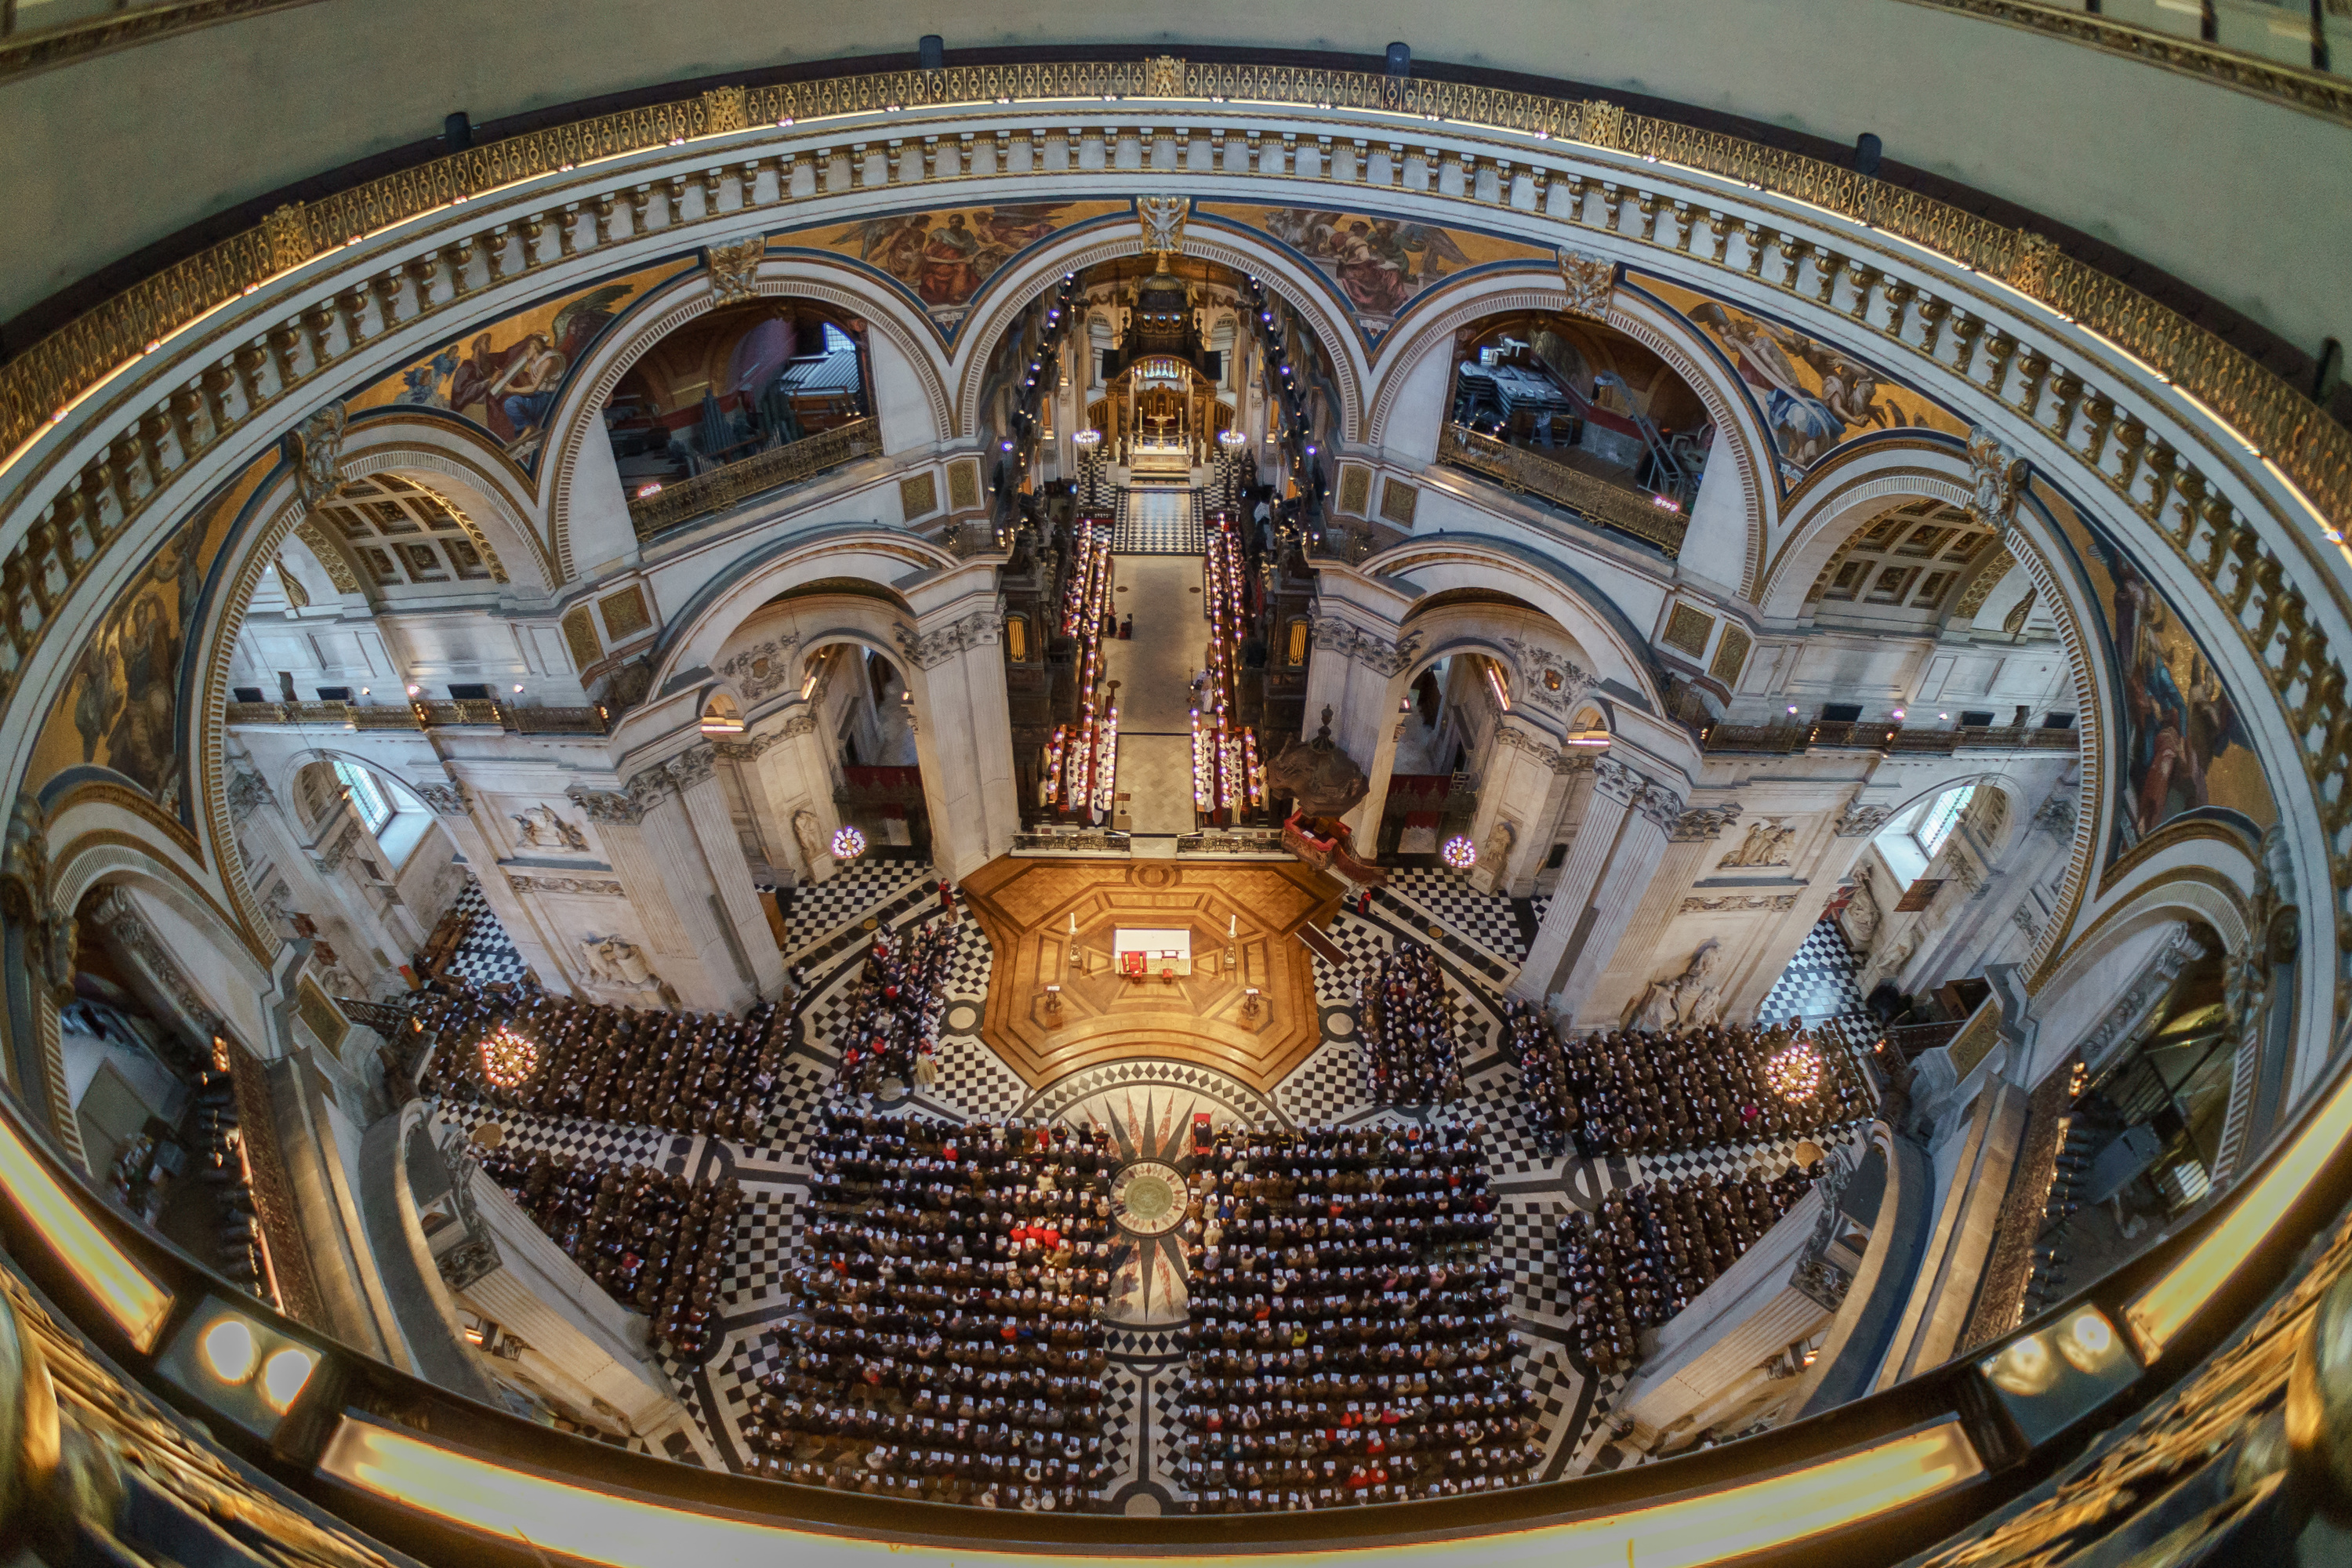 Christmas Carol concert at St Paul's Cathedral